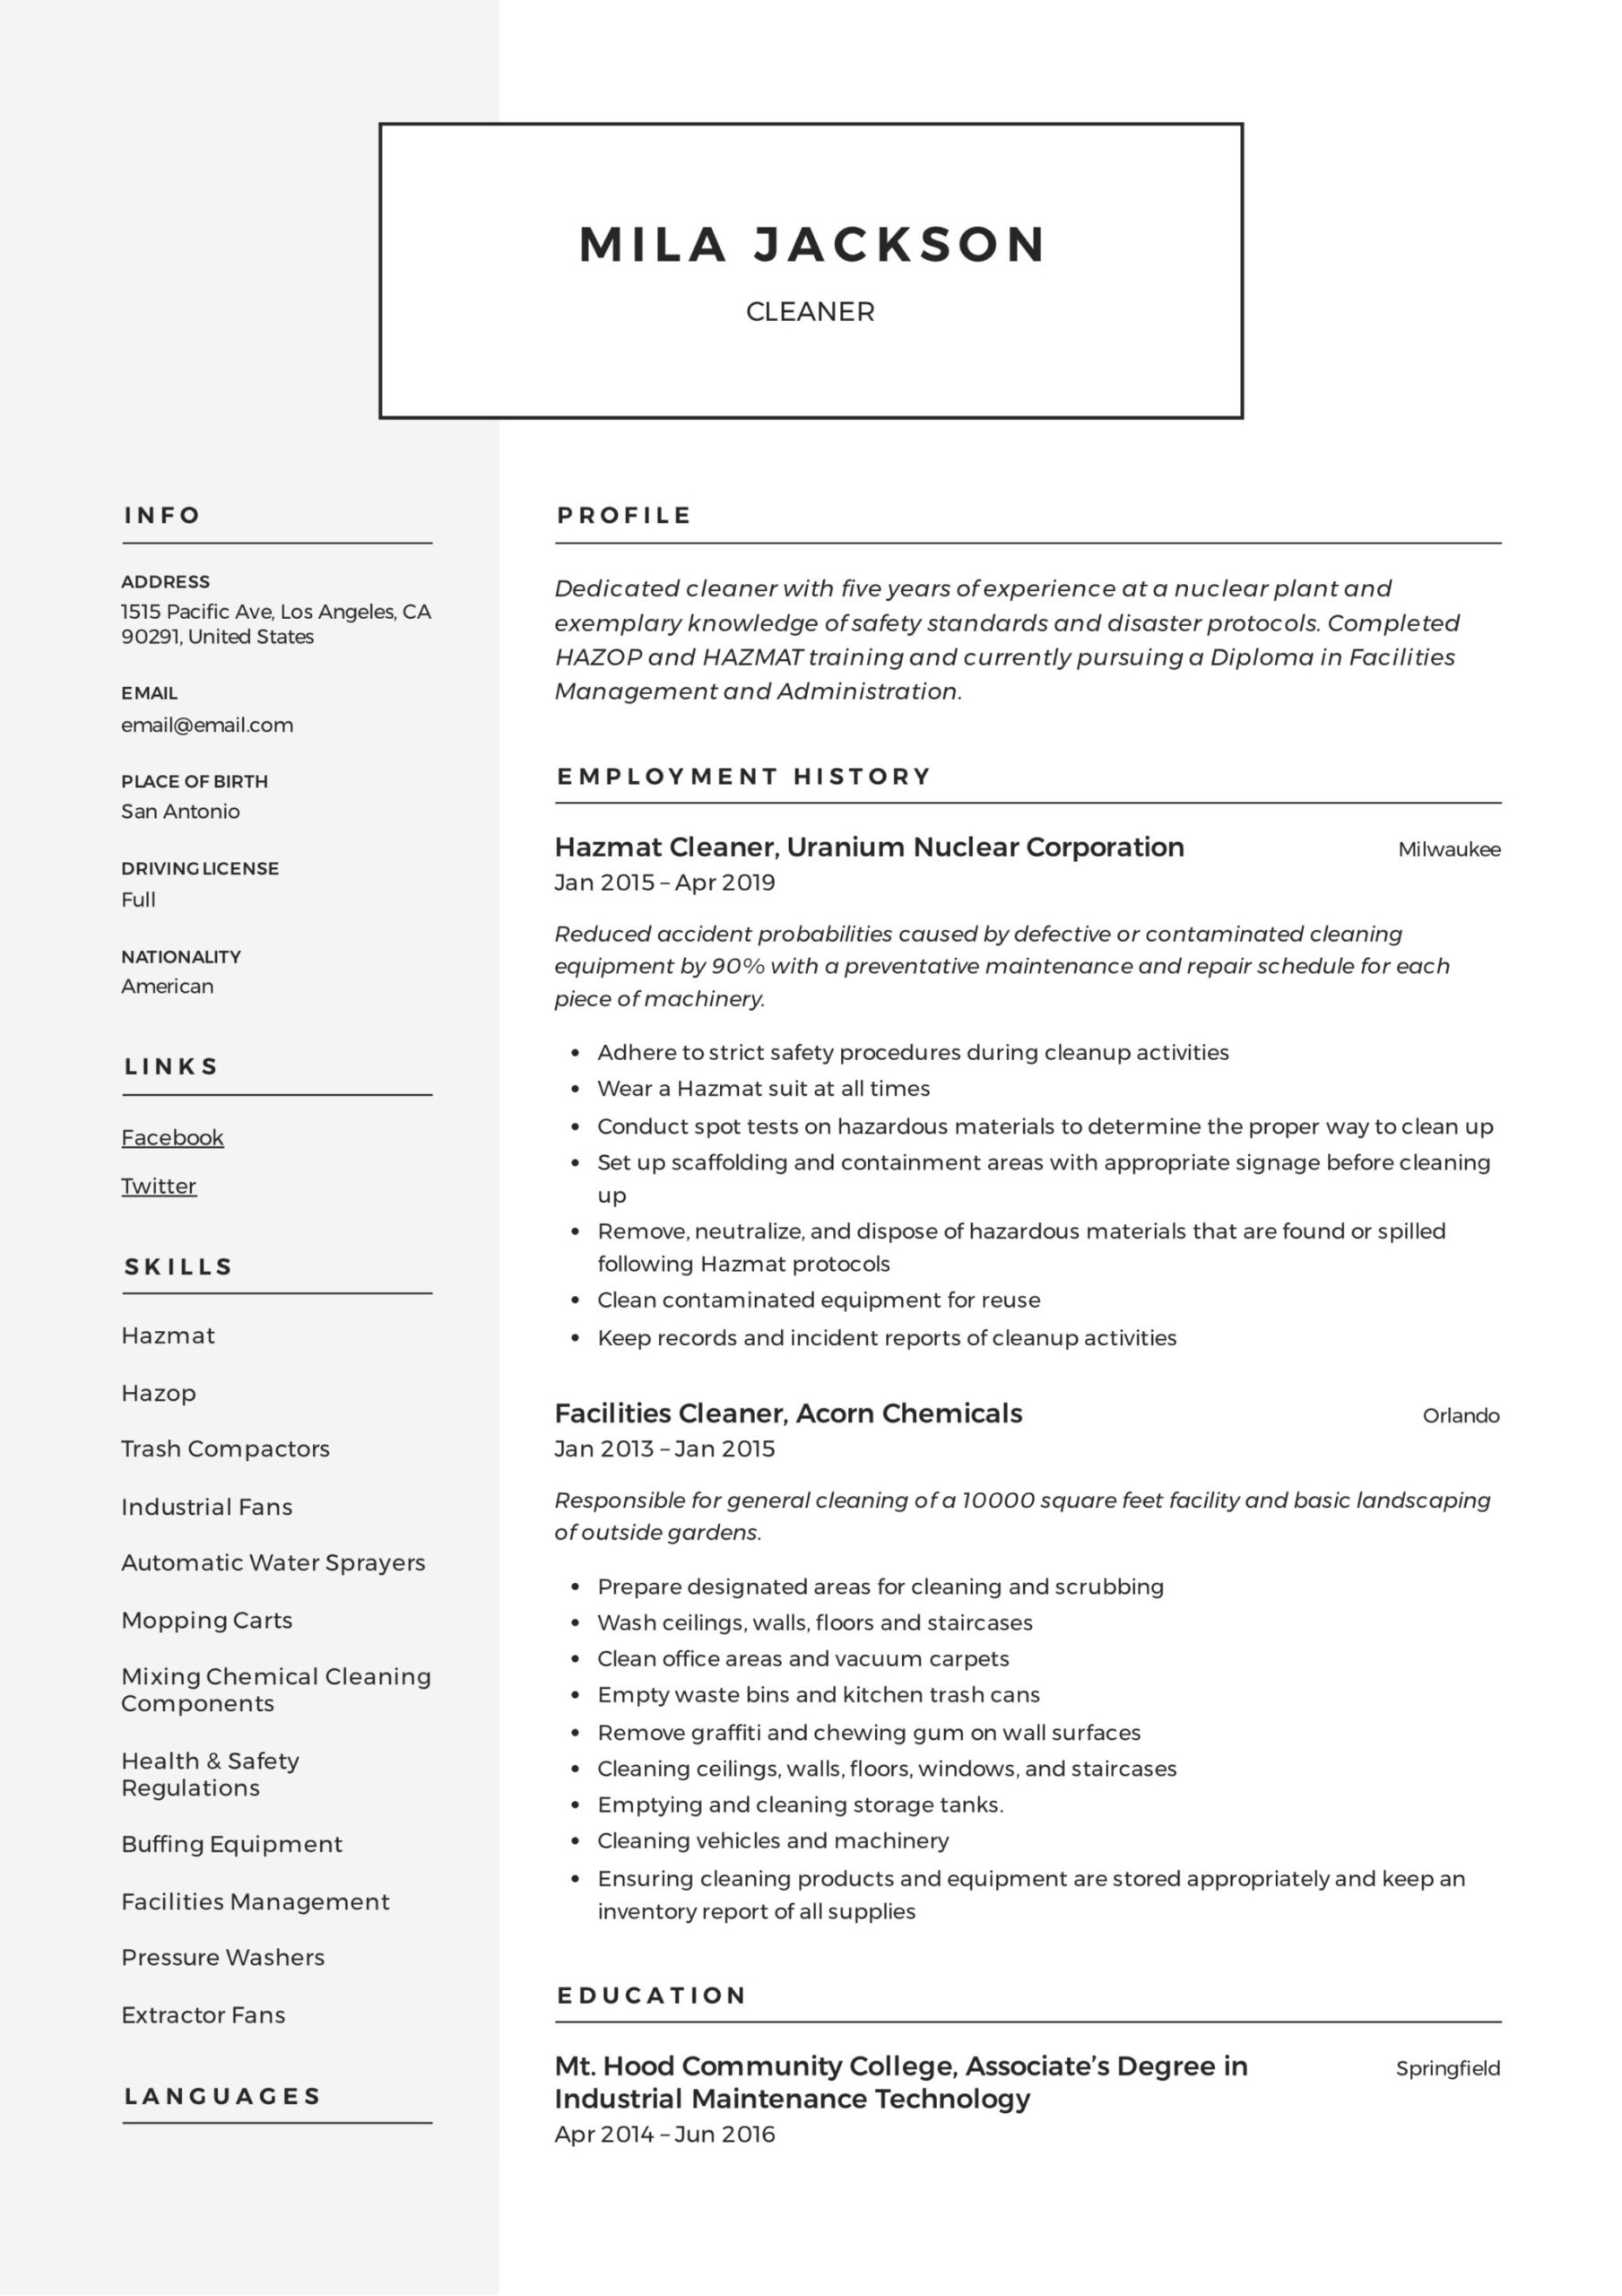 cleaner resume writing guide templates pdf samples for cleaning position mila indeed won Resume Resume Samples For Cleaning Position